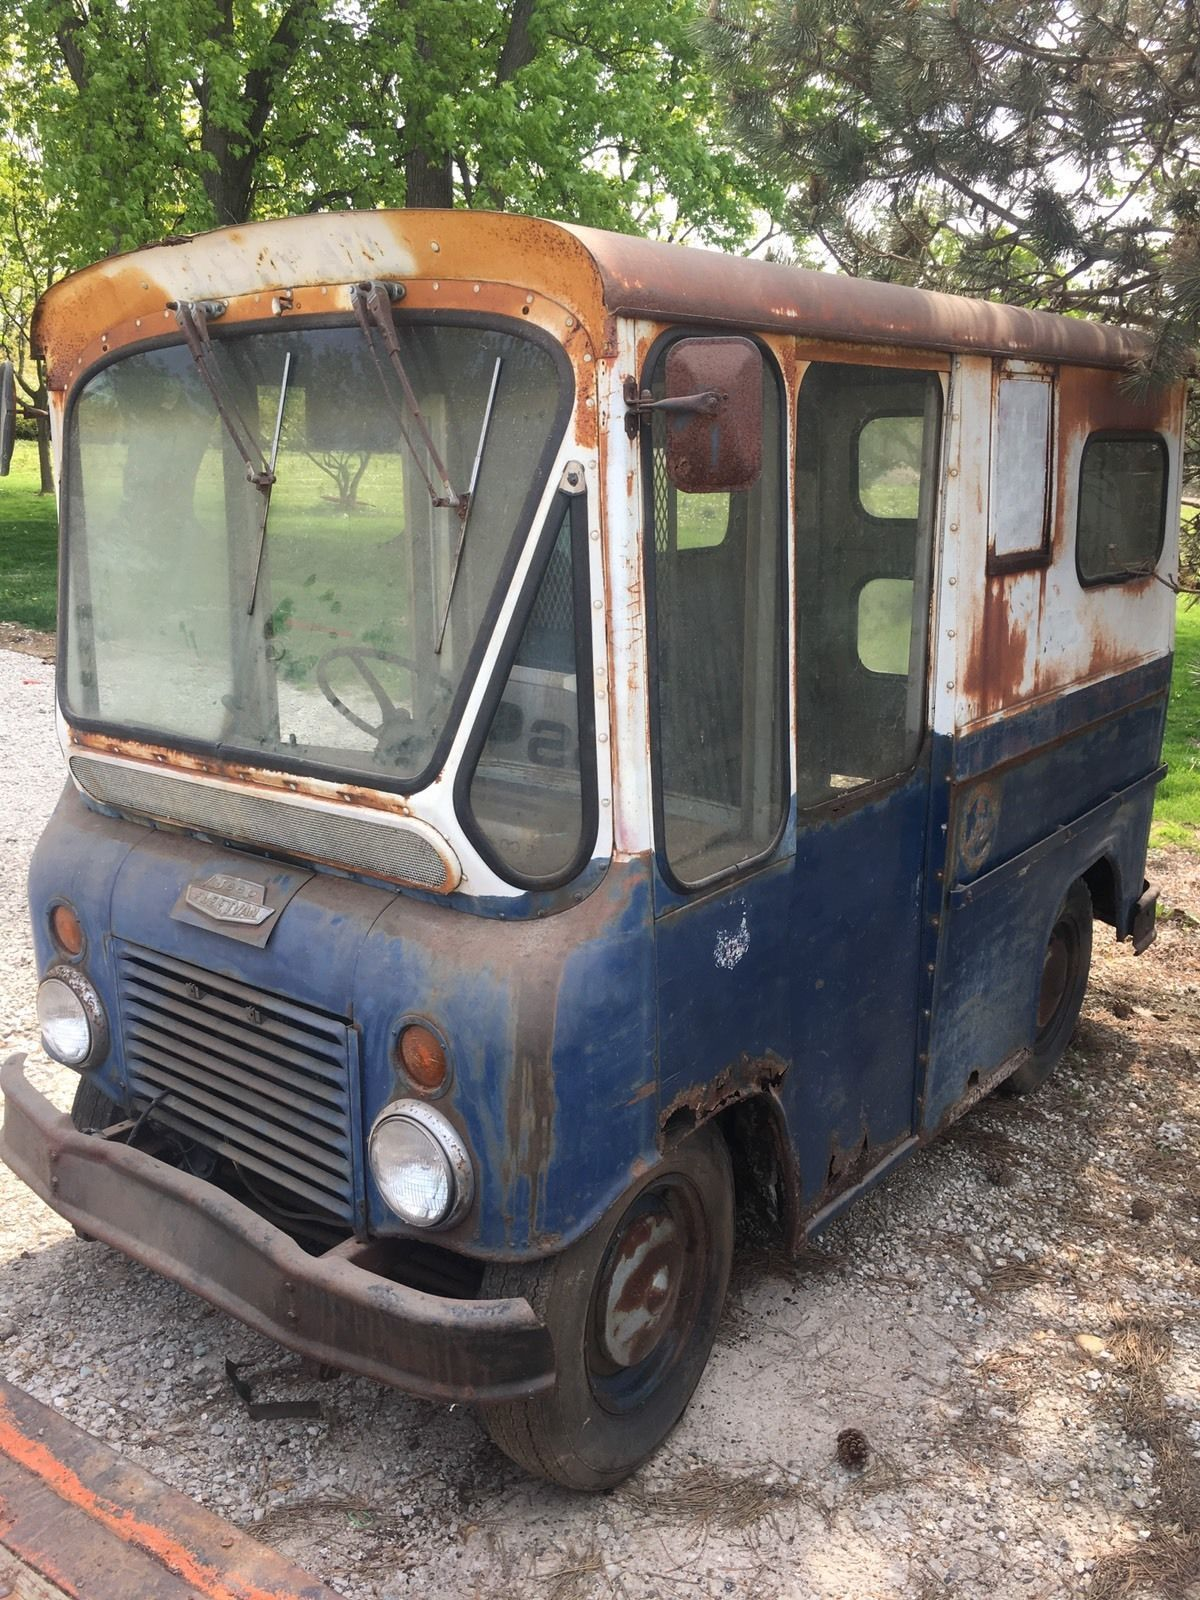 1963 Postal Fleetvan For Sale On Ebay June 2017 Located In Libertyville Illinois Willys Jeep Old Pickup Trucks Mail Truck